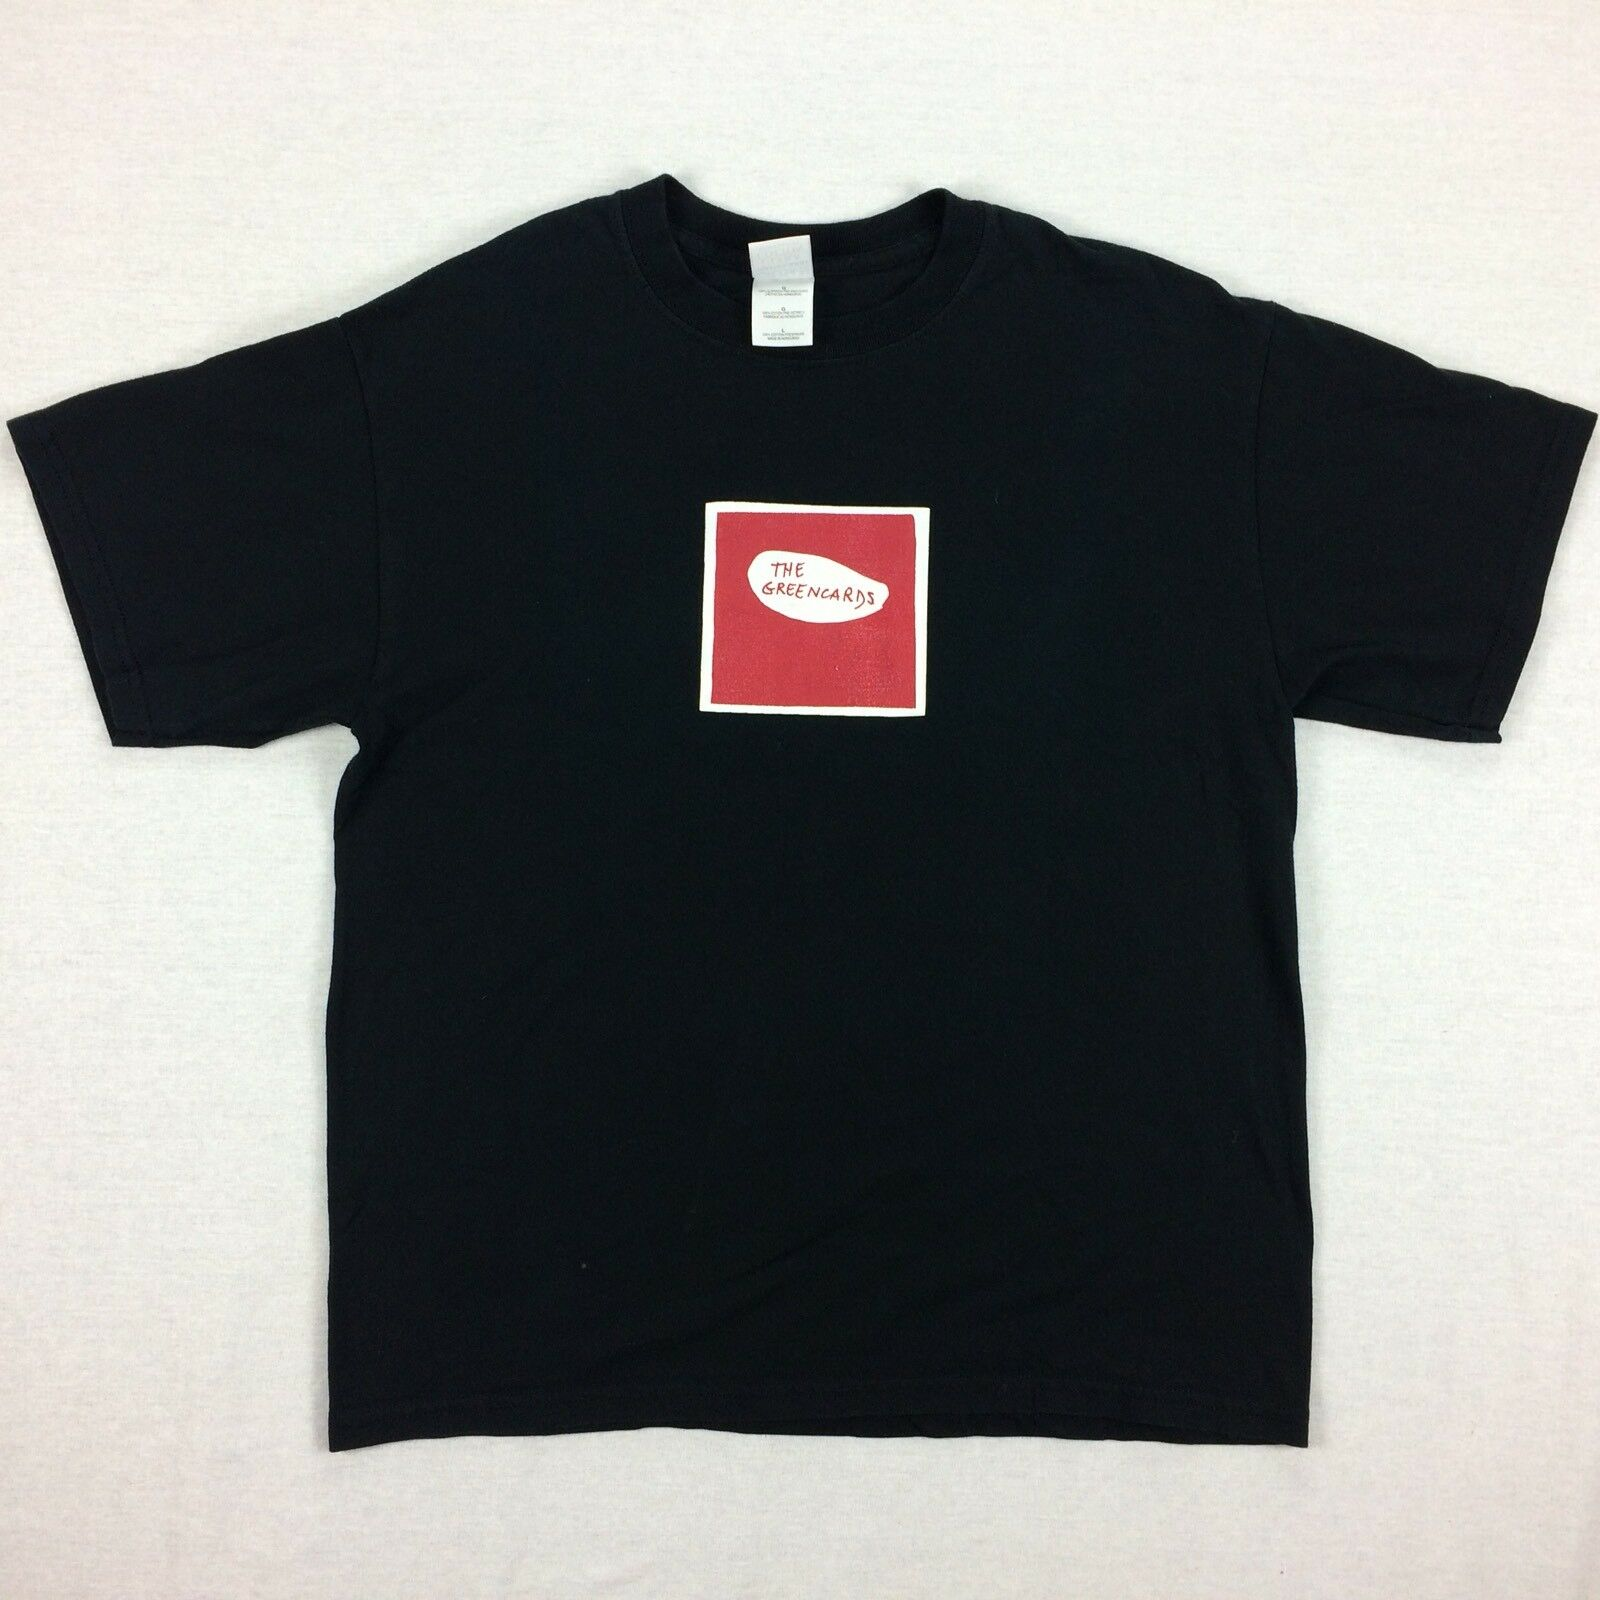 Product Image 1 - The Greencards Band T-Shirt Black